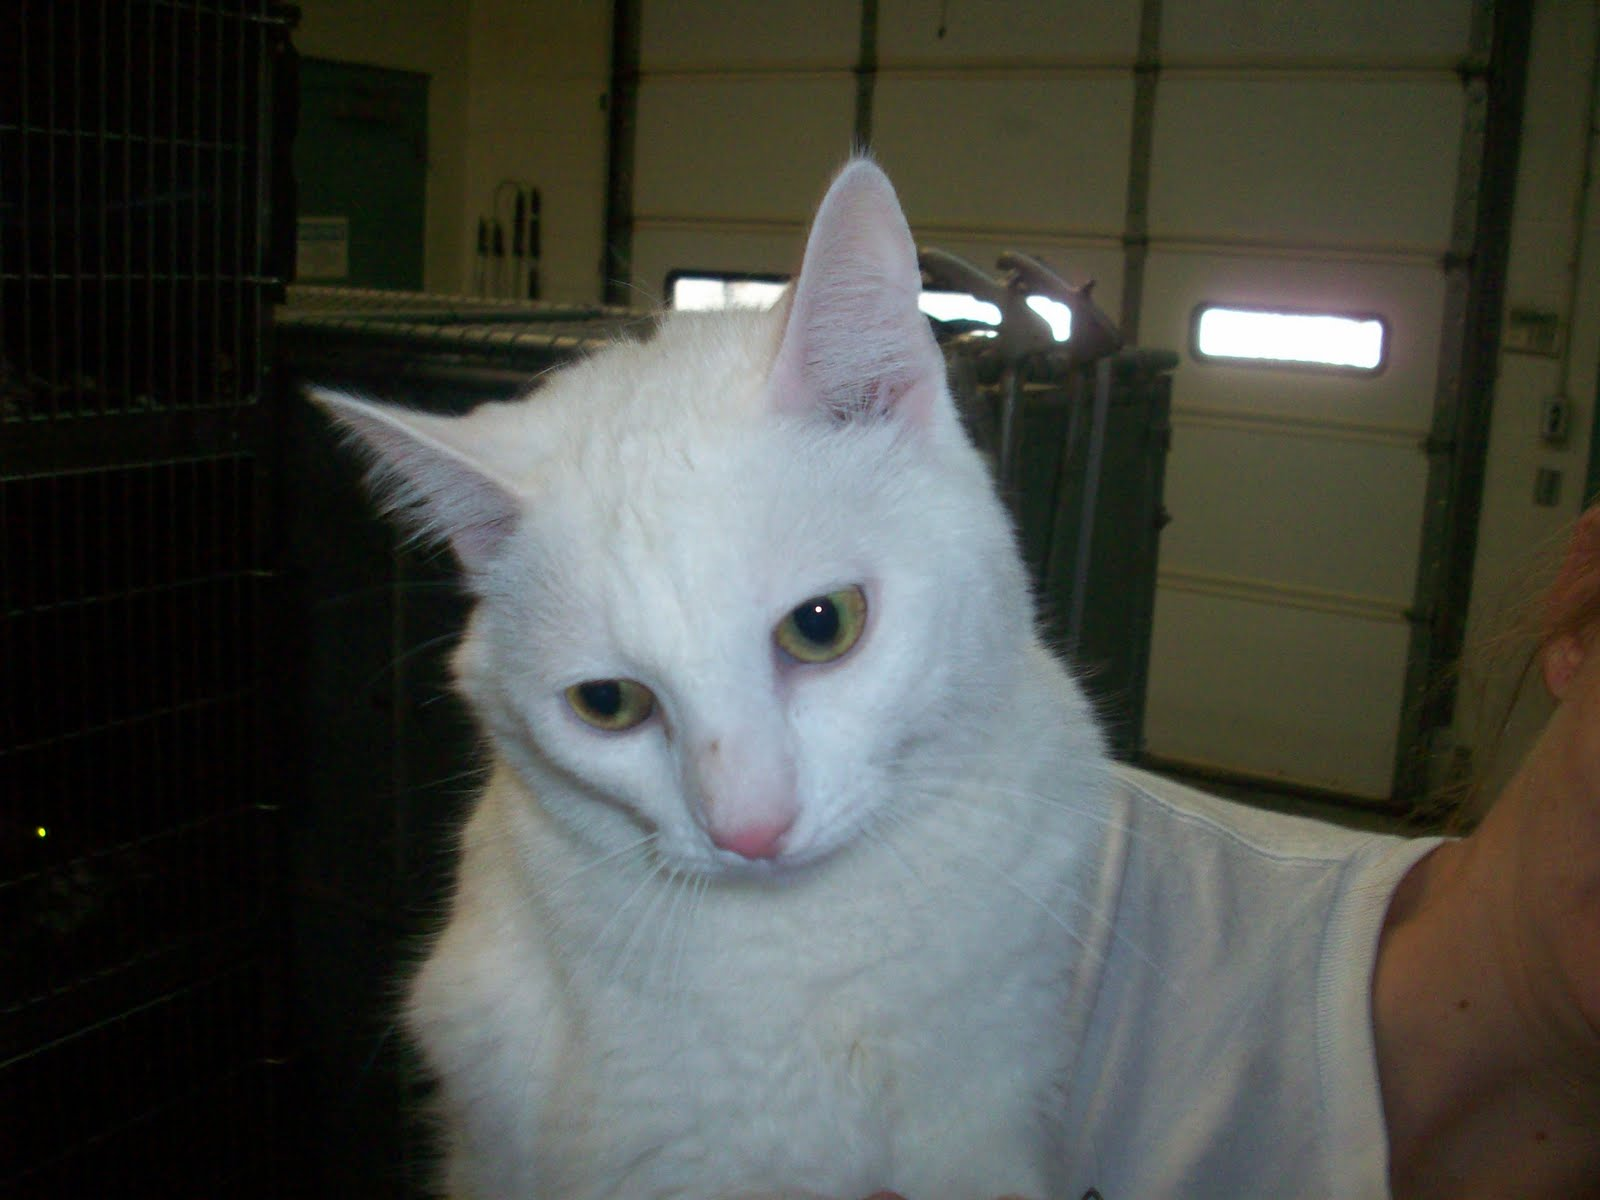 Deaf Animals: Tuscaloosa, AL: Cat Needs to Get Out